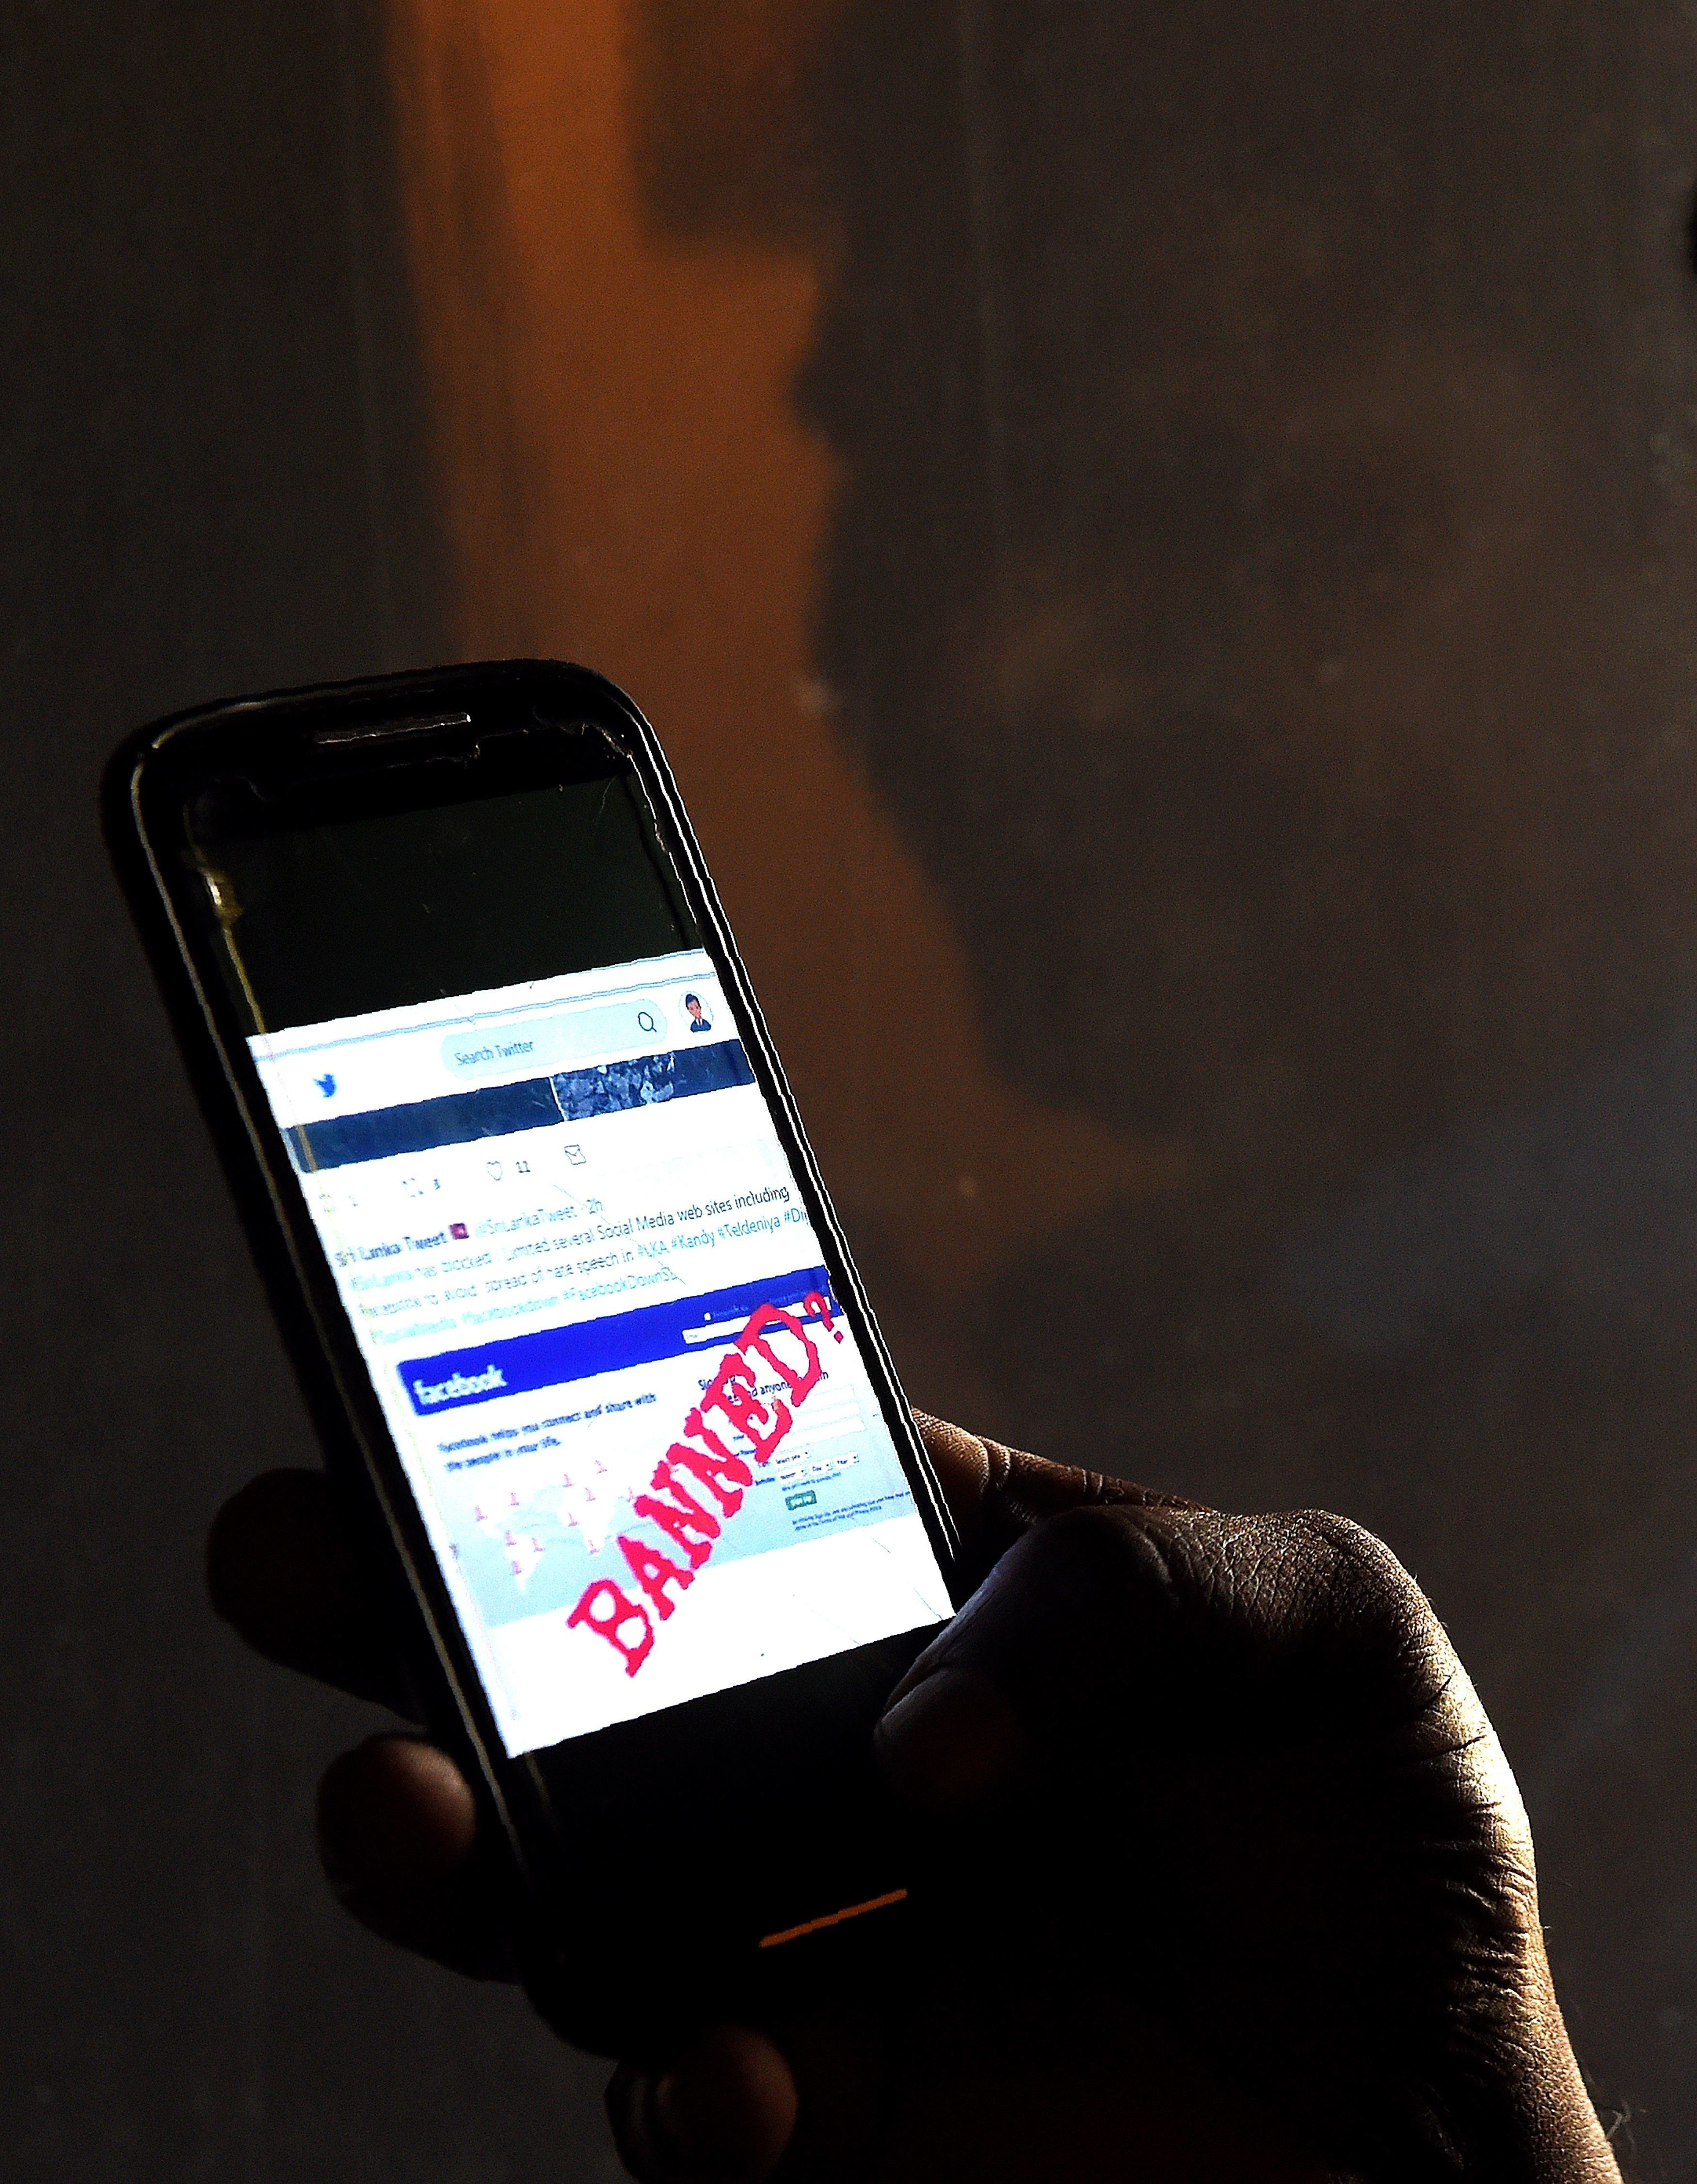 Sri Lanka's Social Media Ban Is Making Facebook Look Like A Victim. It